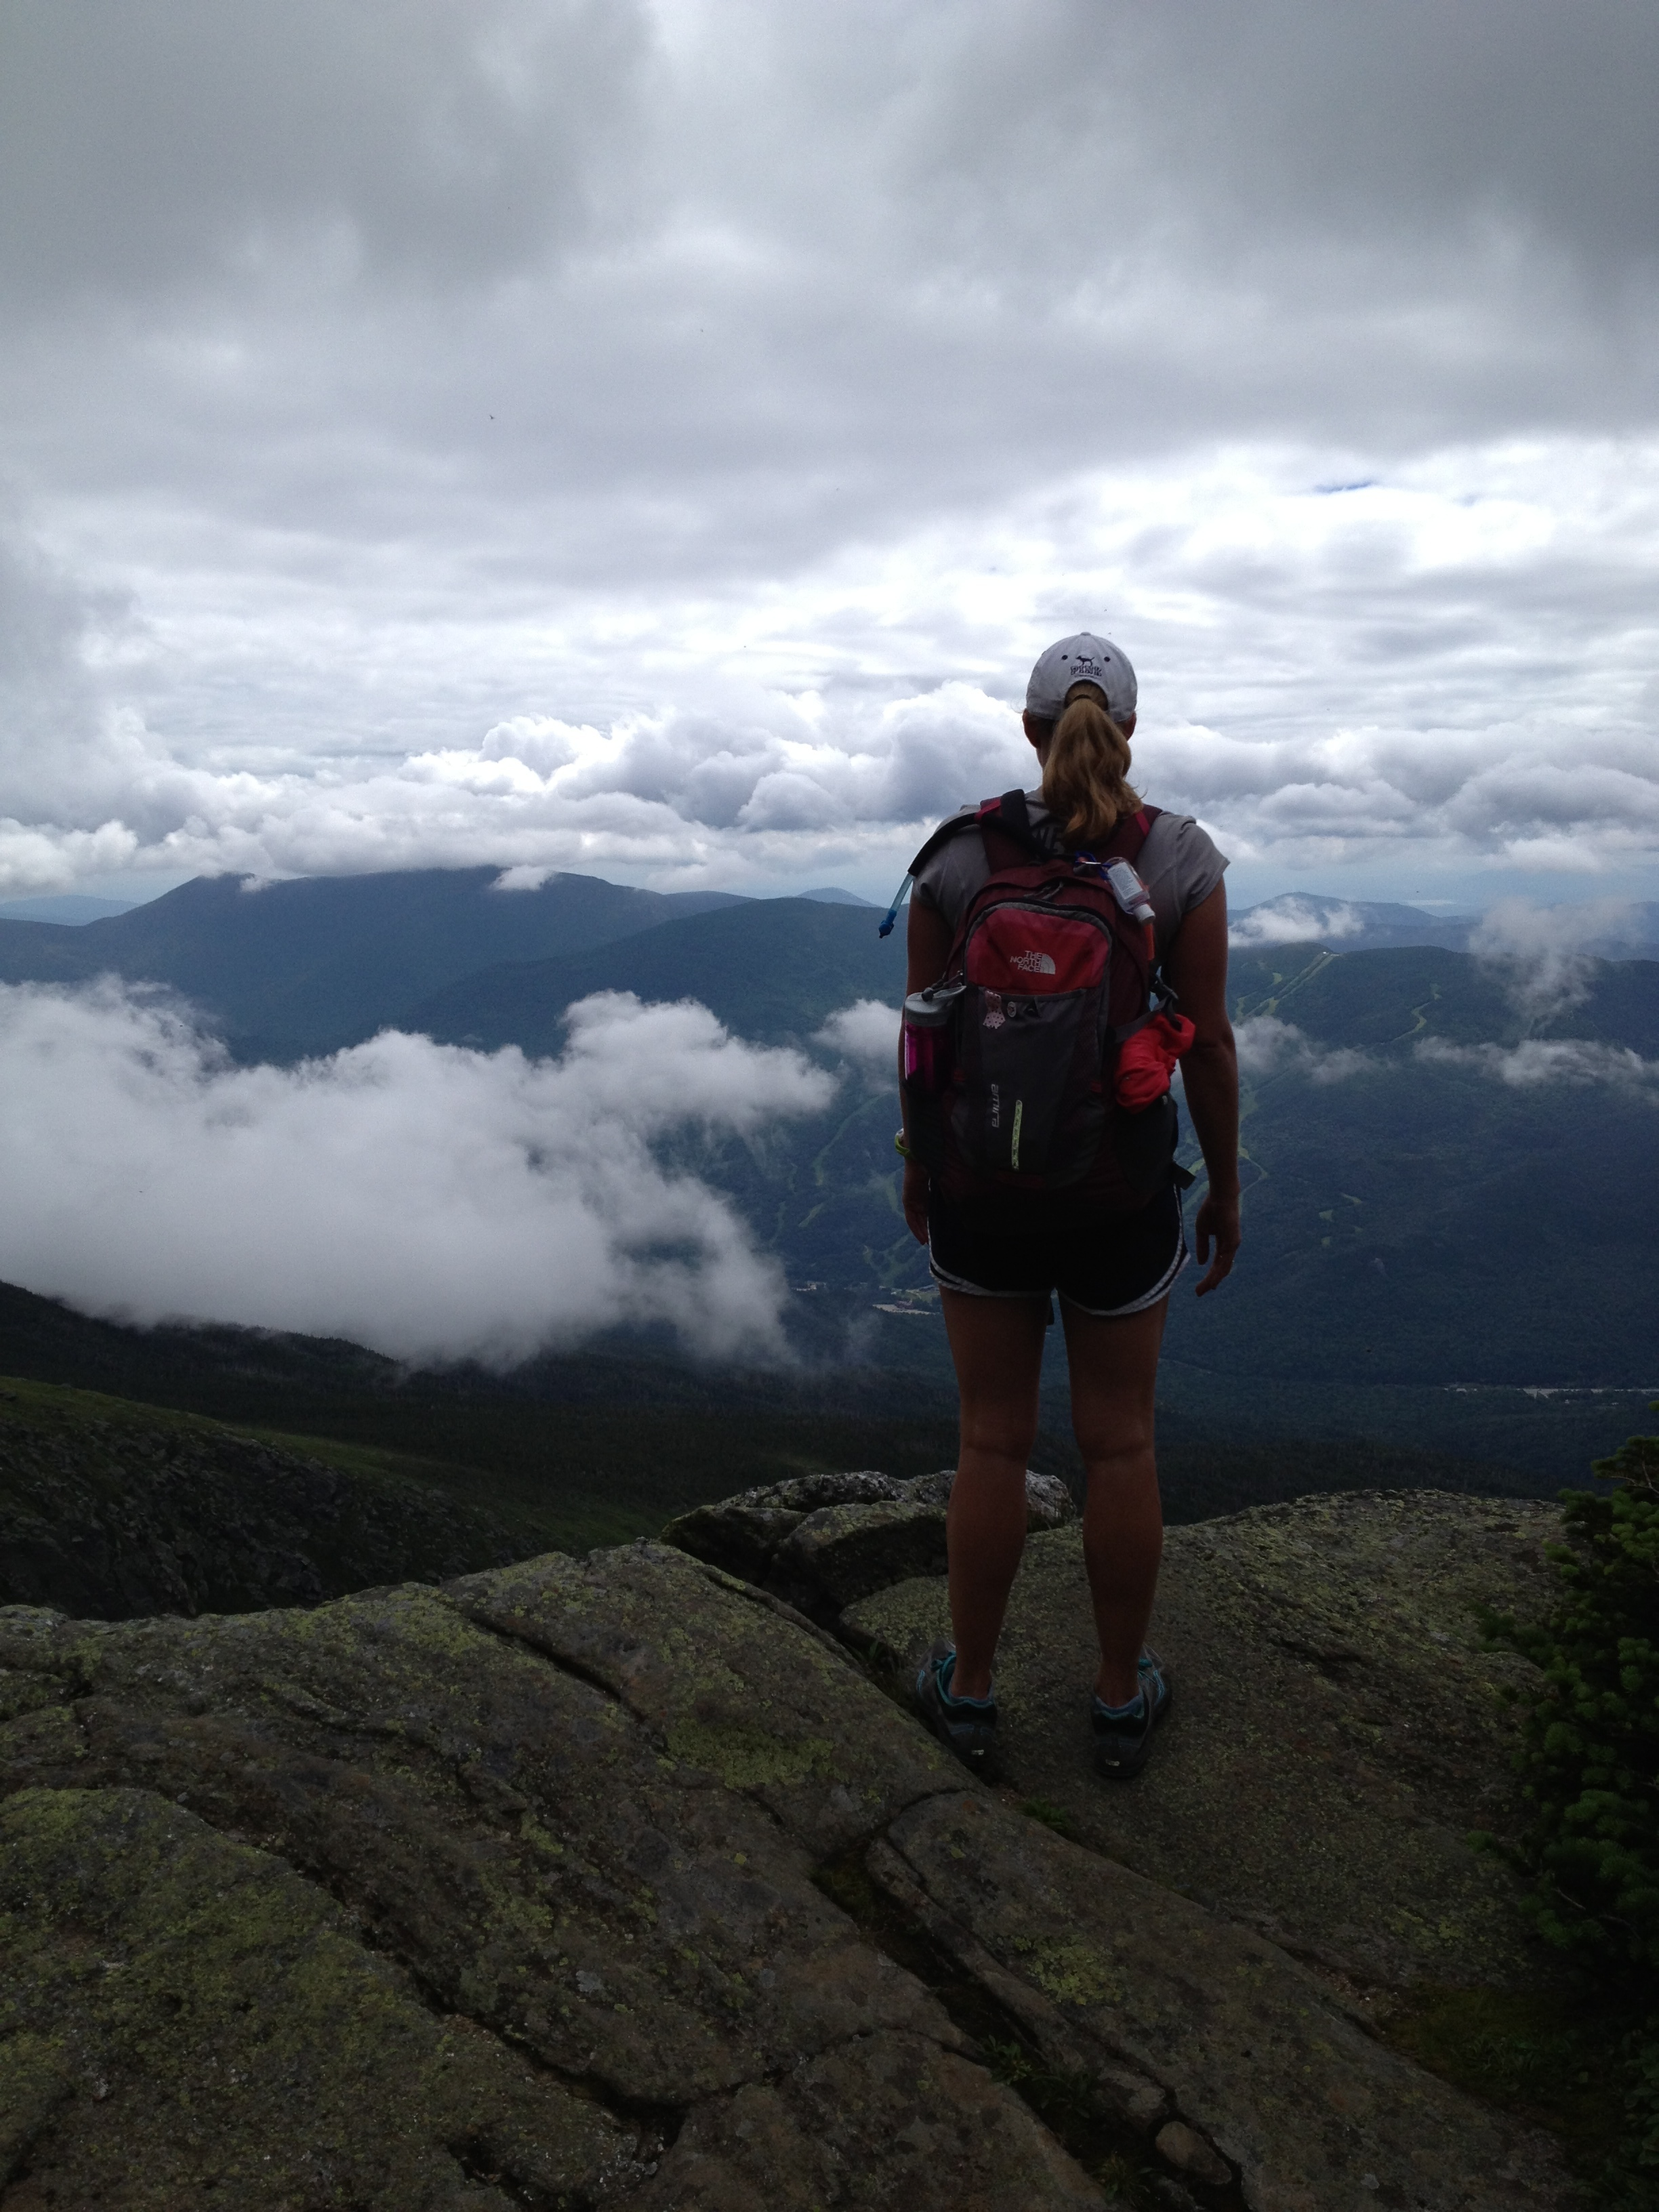 First time hiking and I decided to hike the most dangerous mountain in New England - Mt. Washington. I guess you can say that I like a challenge eh?